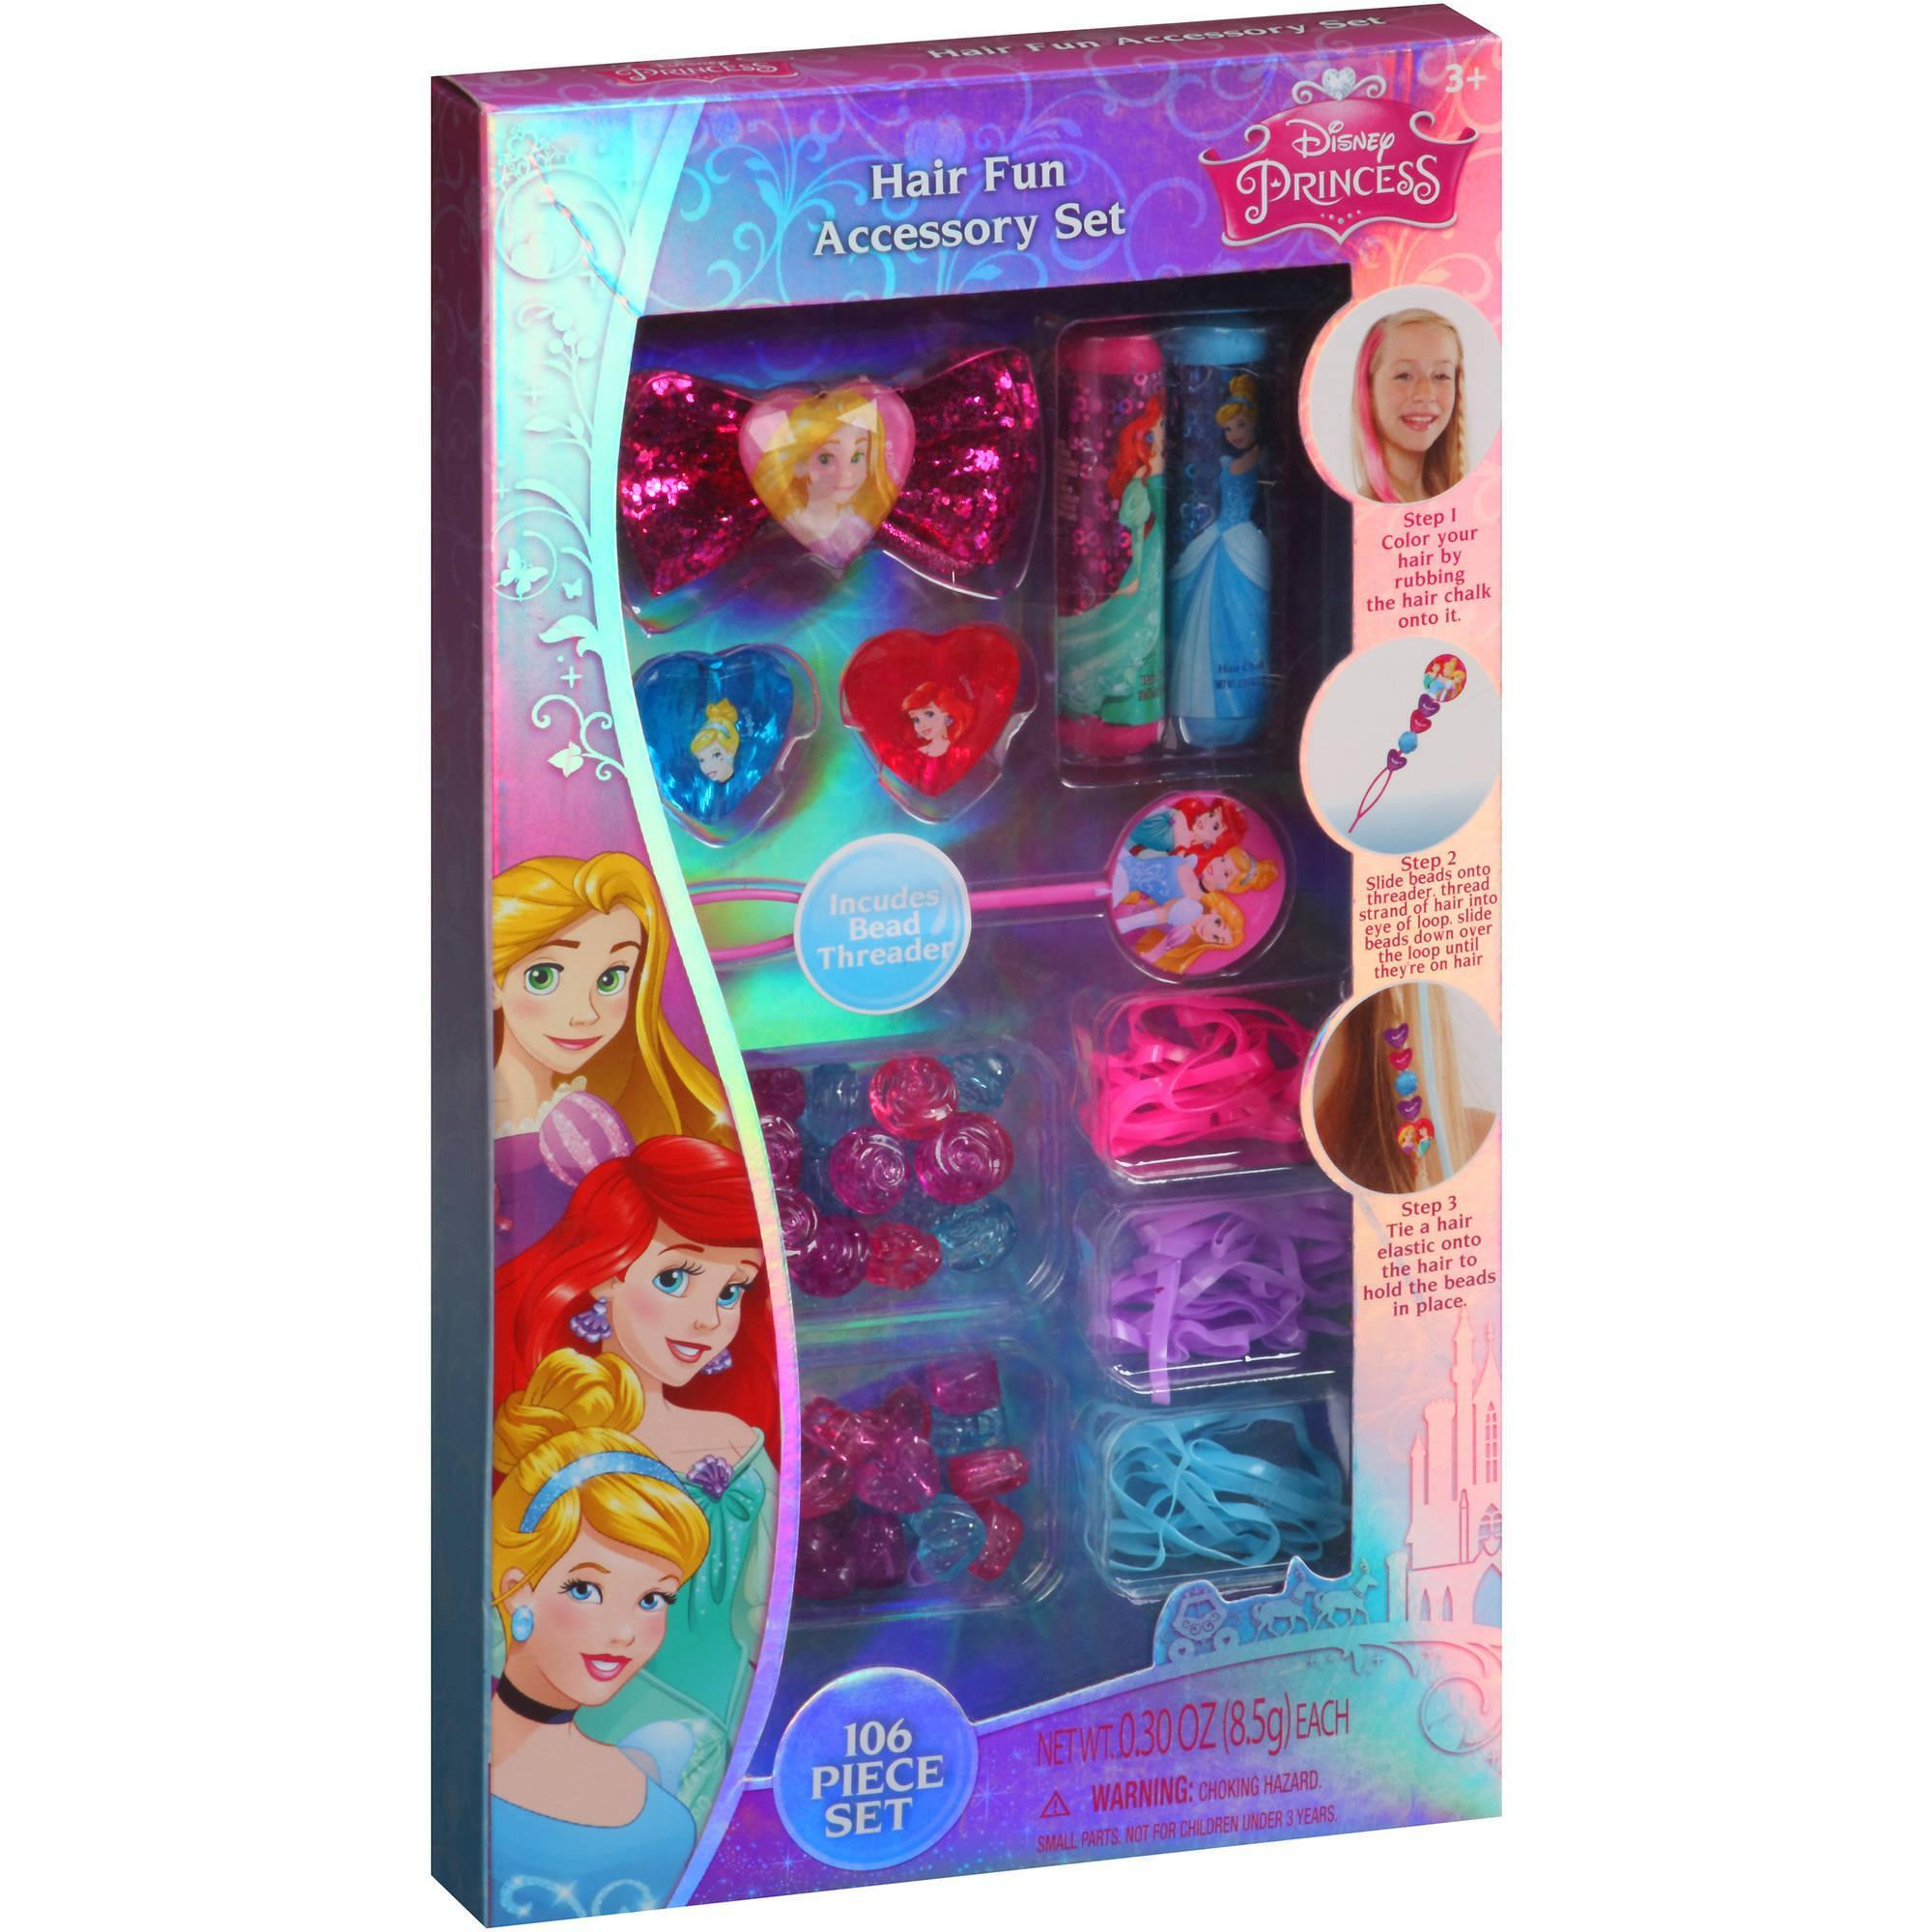 Disney Princess Hair Fun Accessory Set Just $2.44 Down From $4.88 At Walmart!